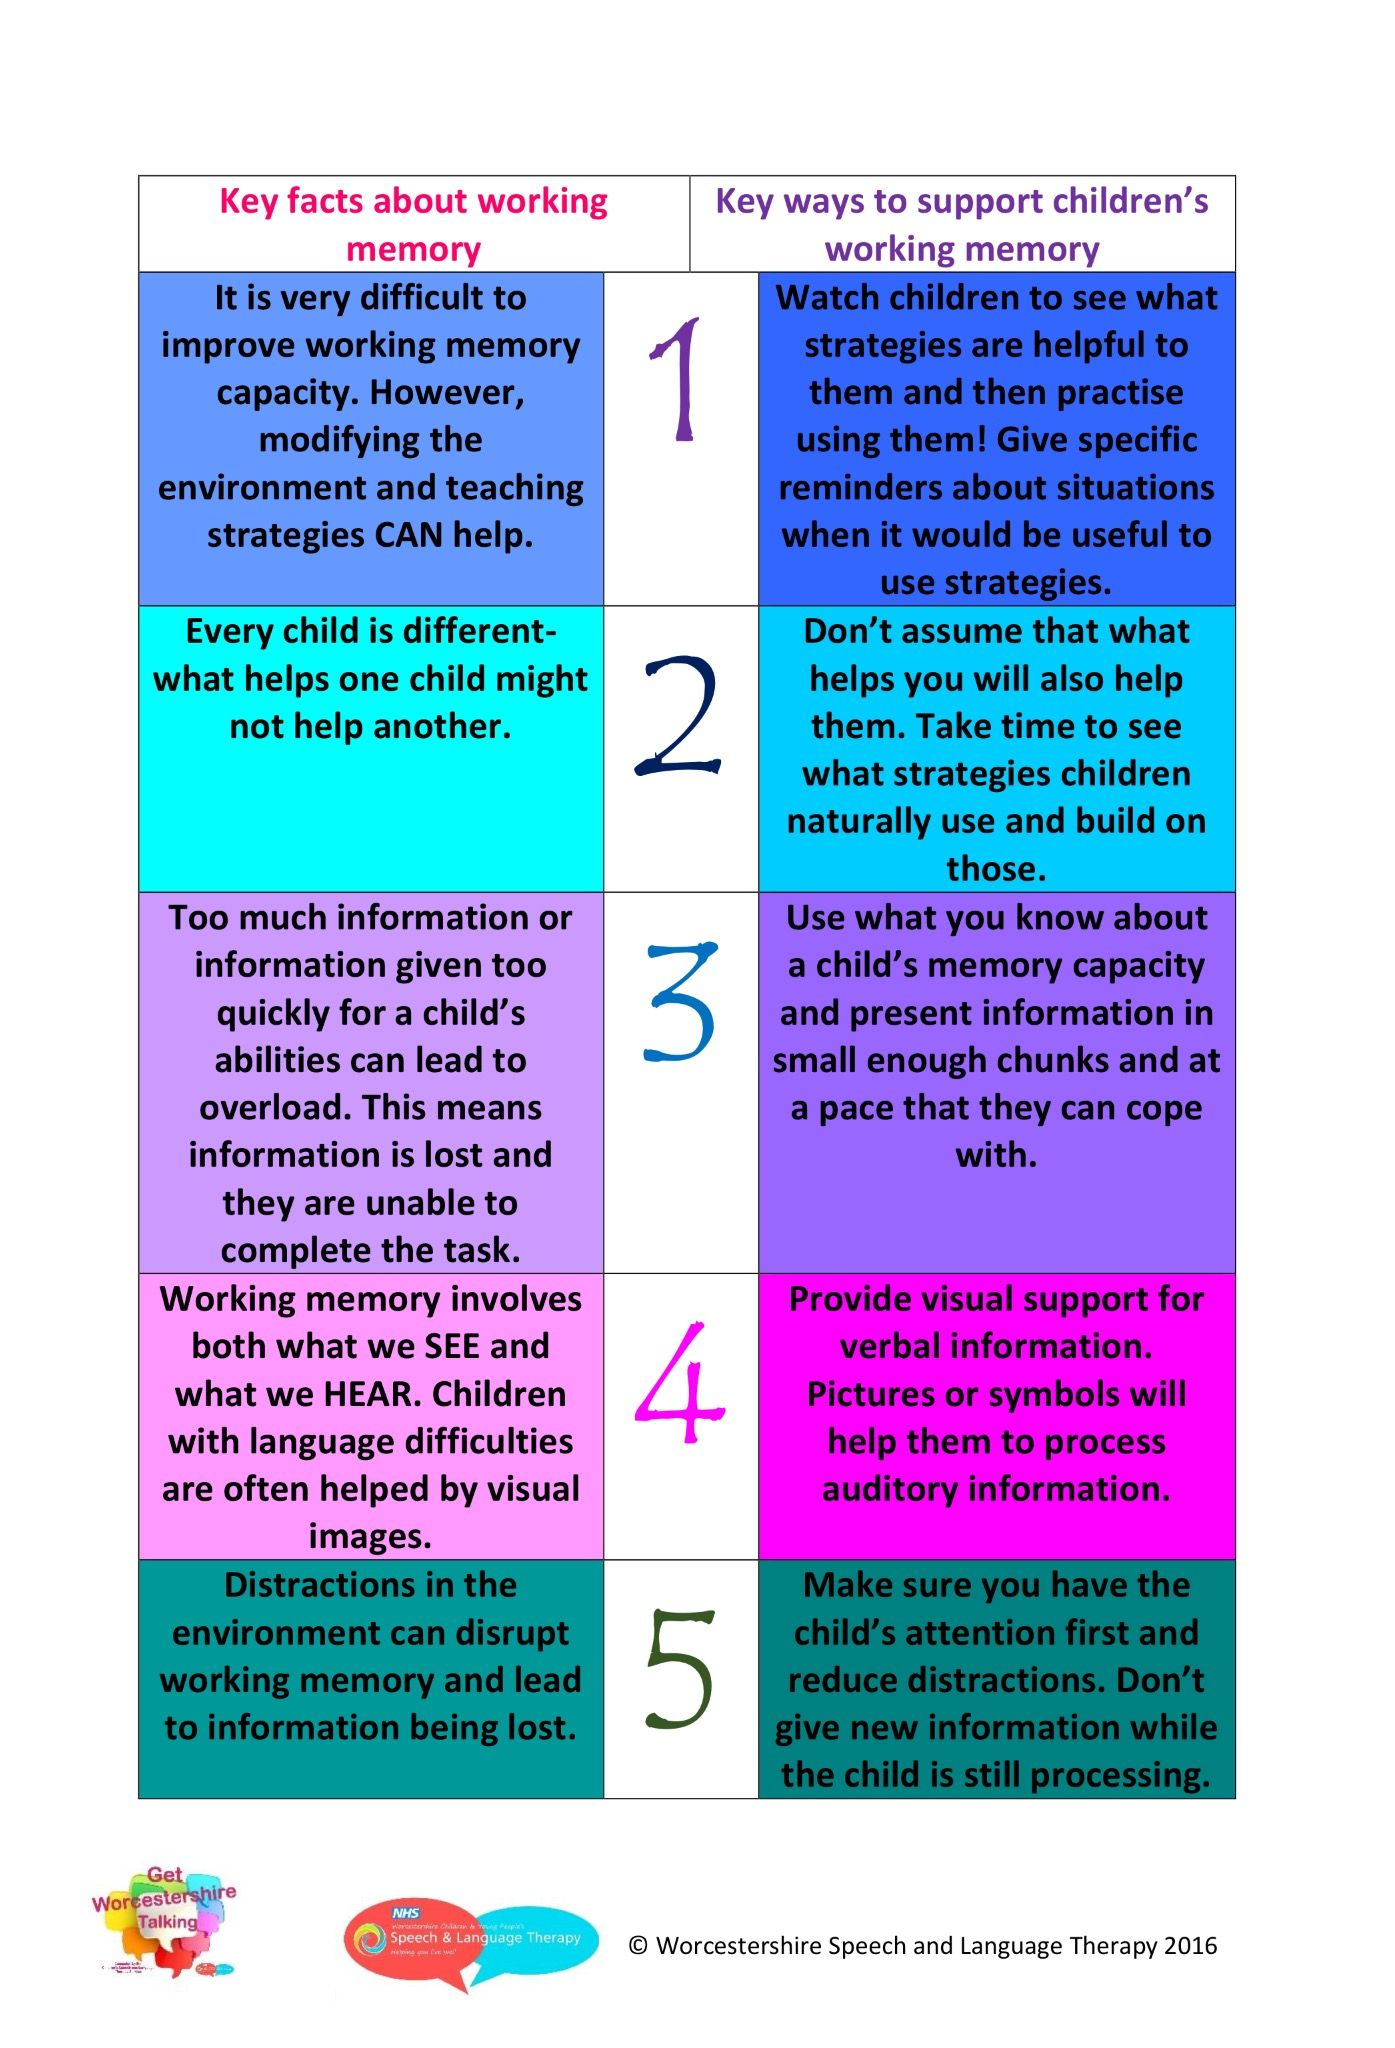 Key Facts And Strategies For Working Memory